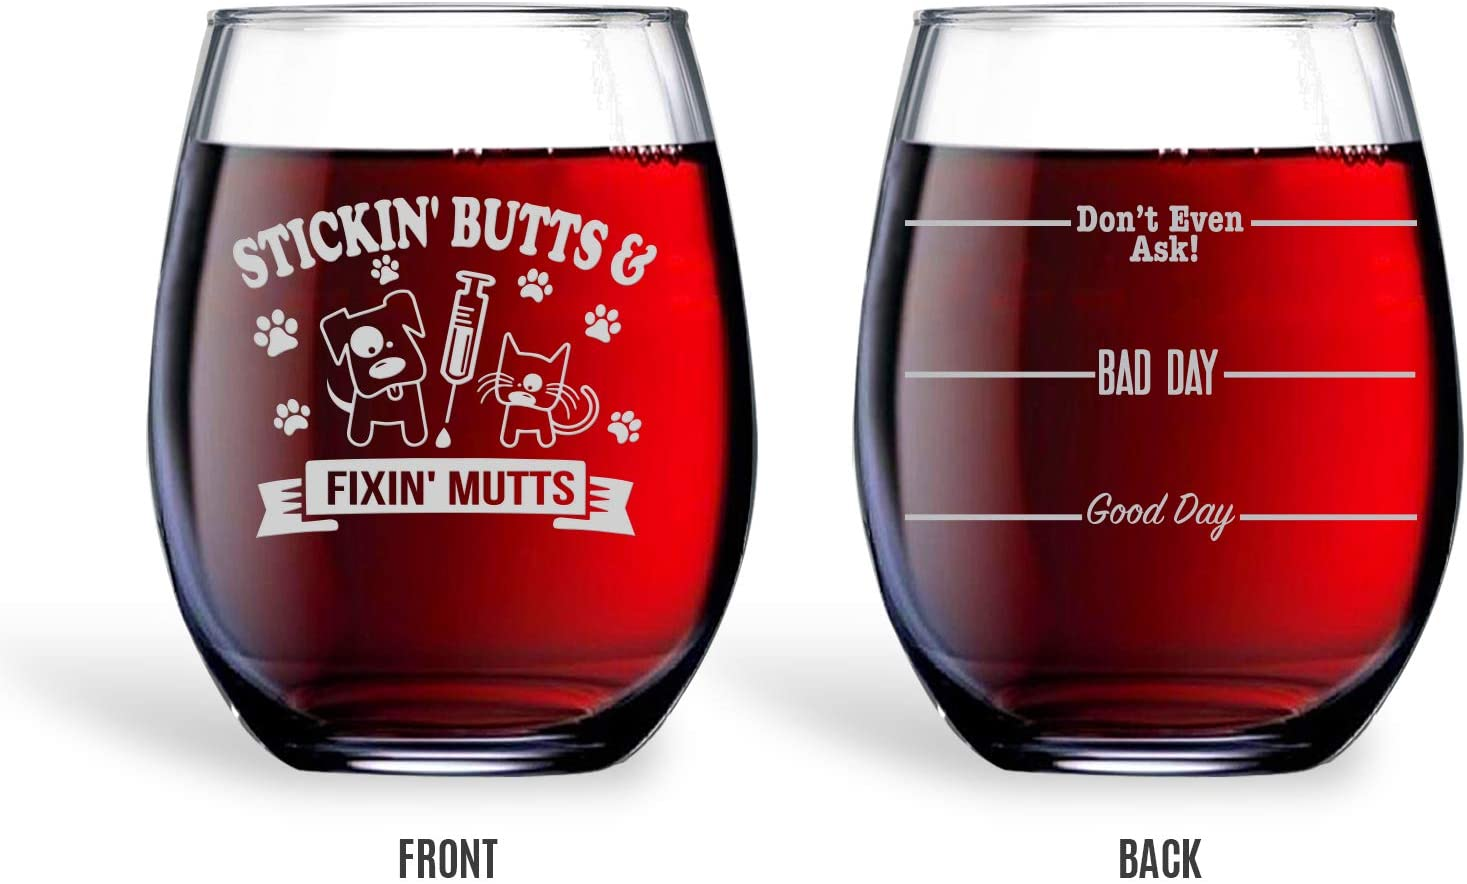 Bad Bananas Veterinarian And Vet Tech Gifts - 21 oz Engraved Stemless Wine Glass with Coaster - Good Day, Bad Day, Don't Even Ask